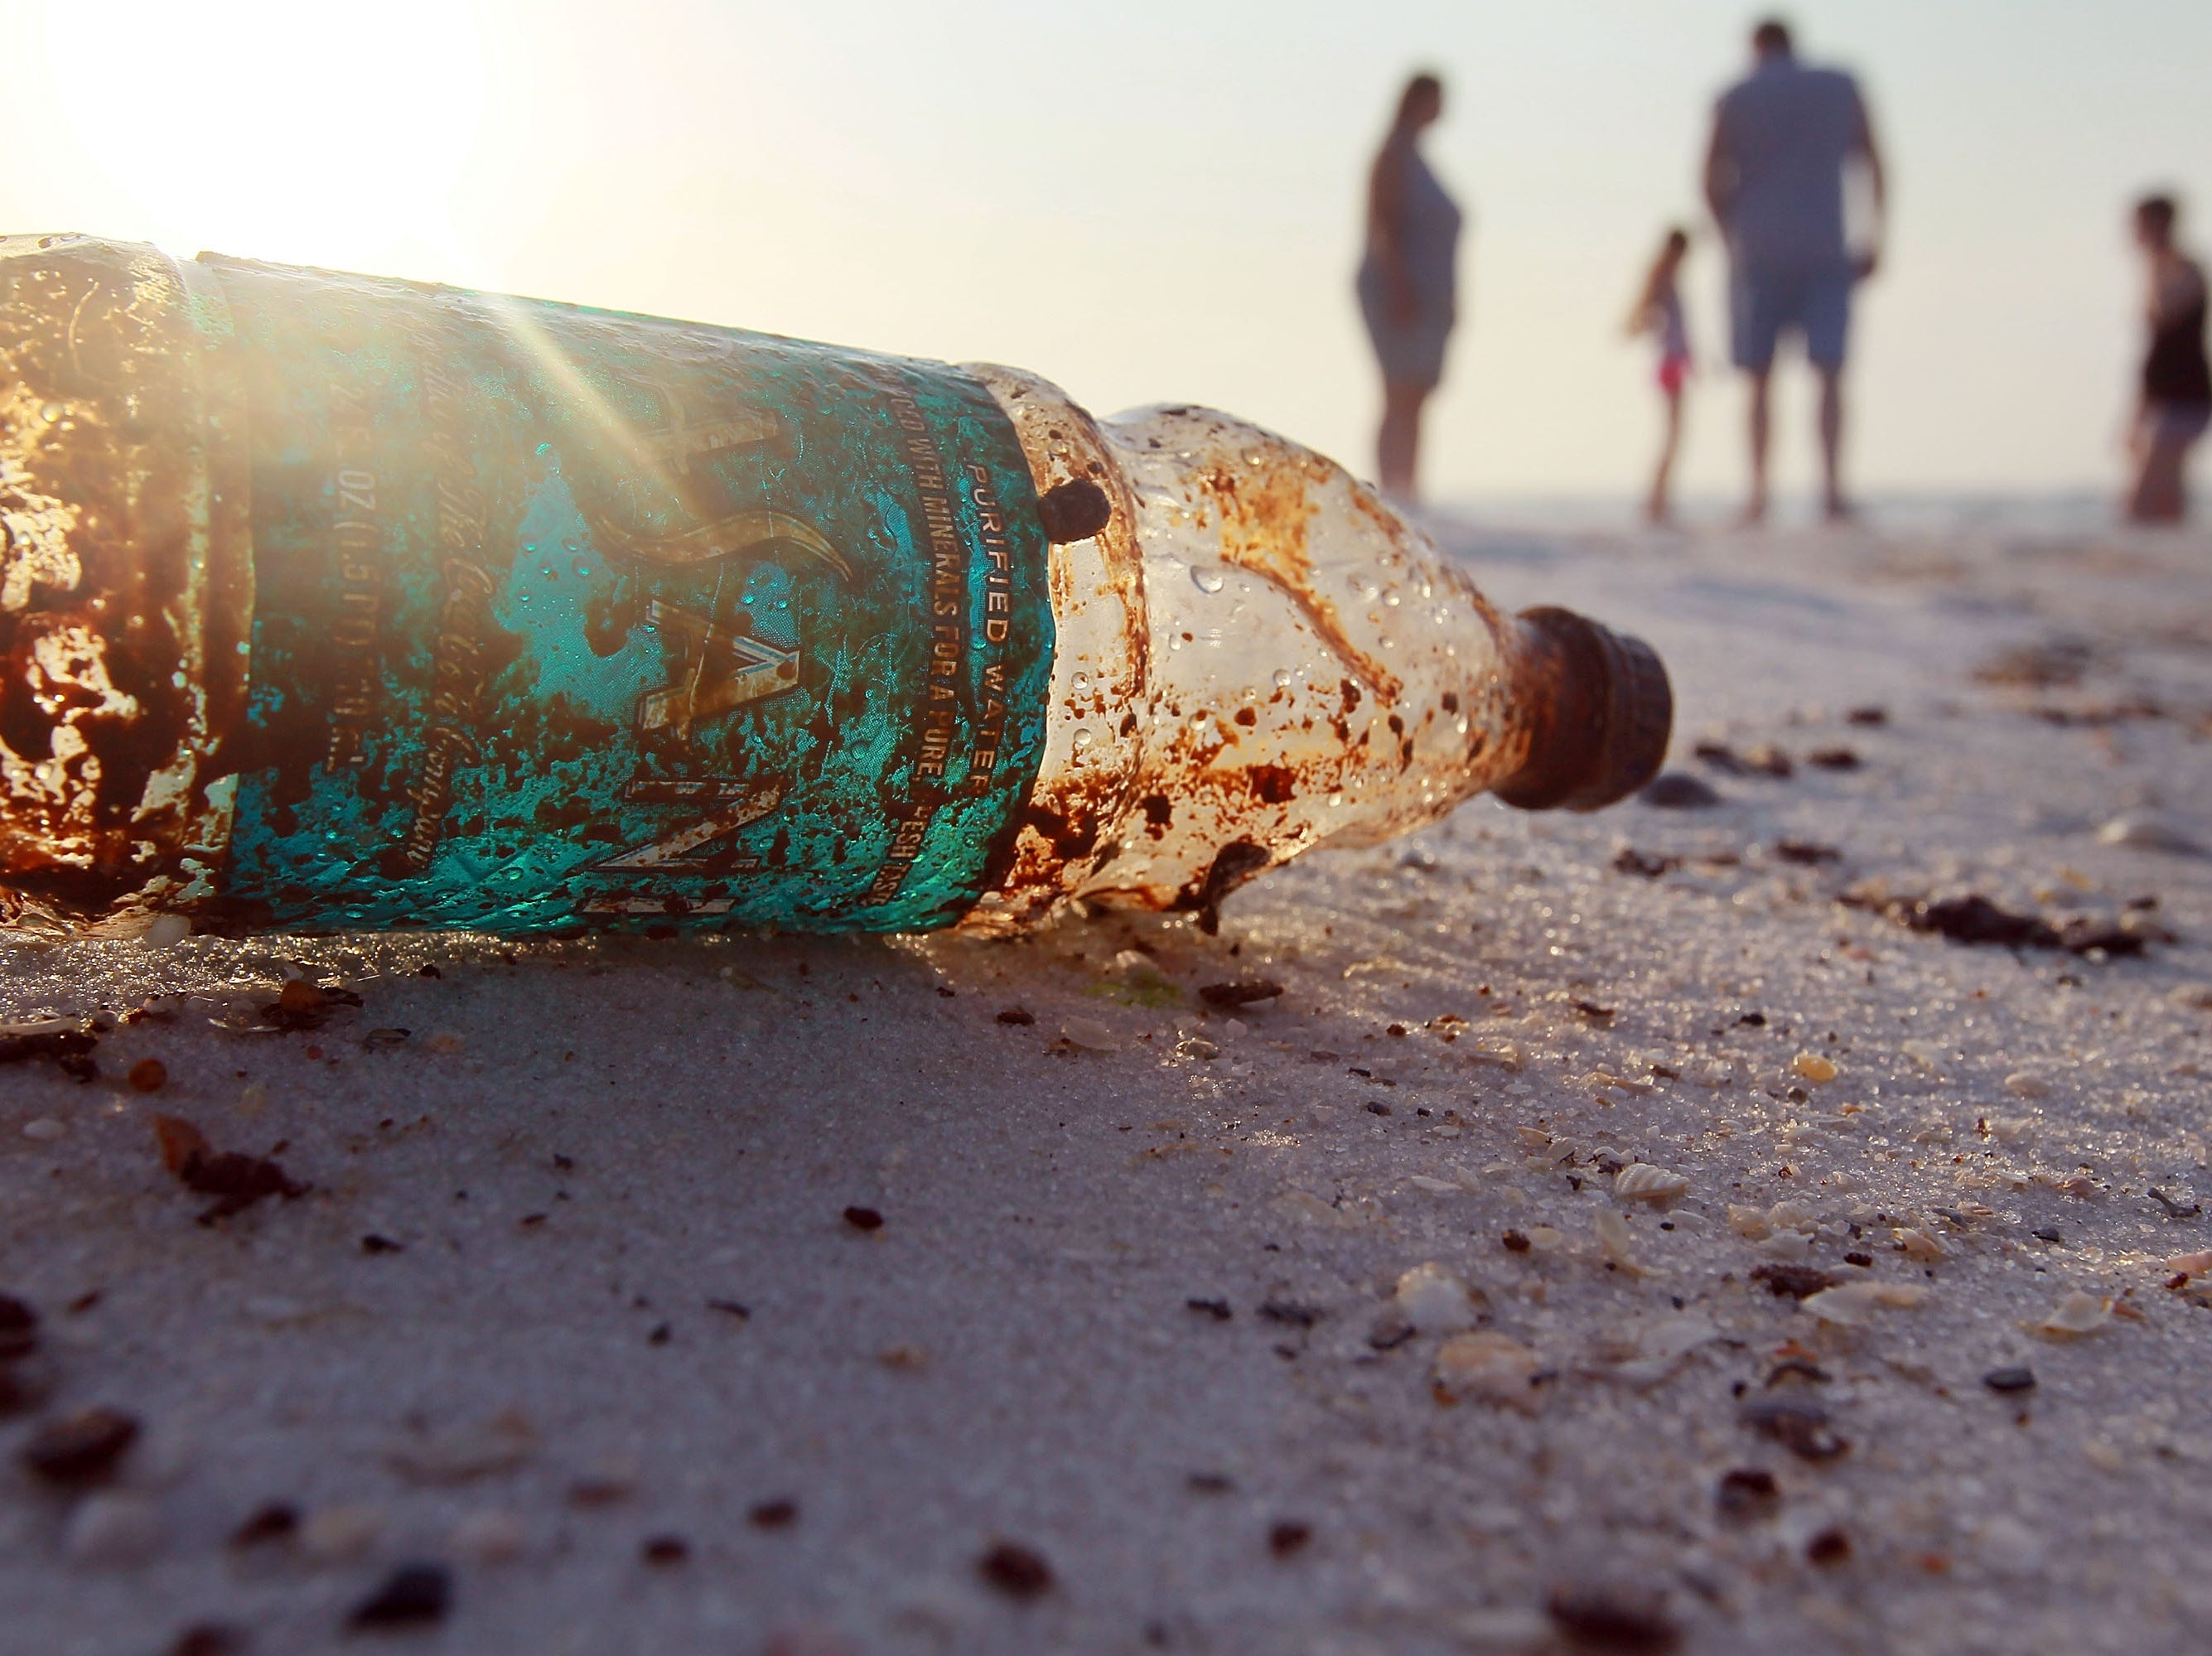 A plastic bottle is seen coated in oil on Pensacola Beach as oil makes its way on shore from the Deepwater Horizon oil spill in the Gulf of Mexico on June 6, 2010 in Pensacola, Fla.